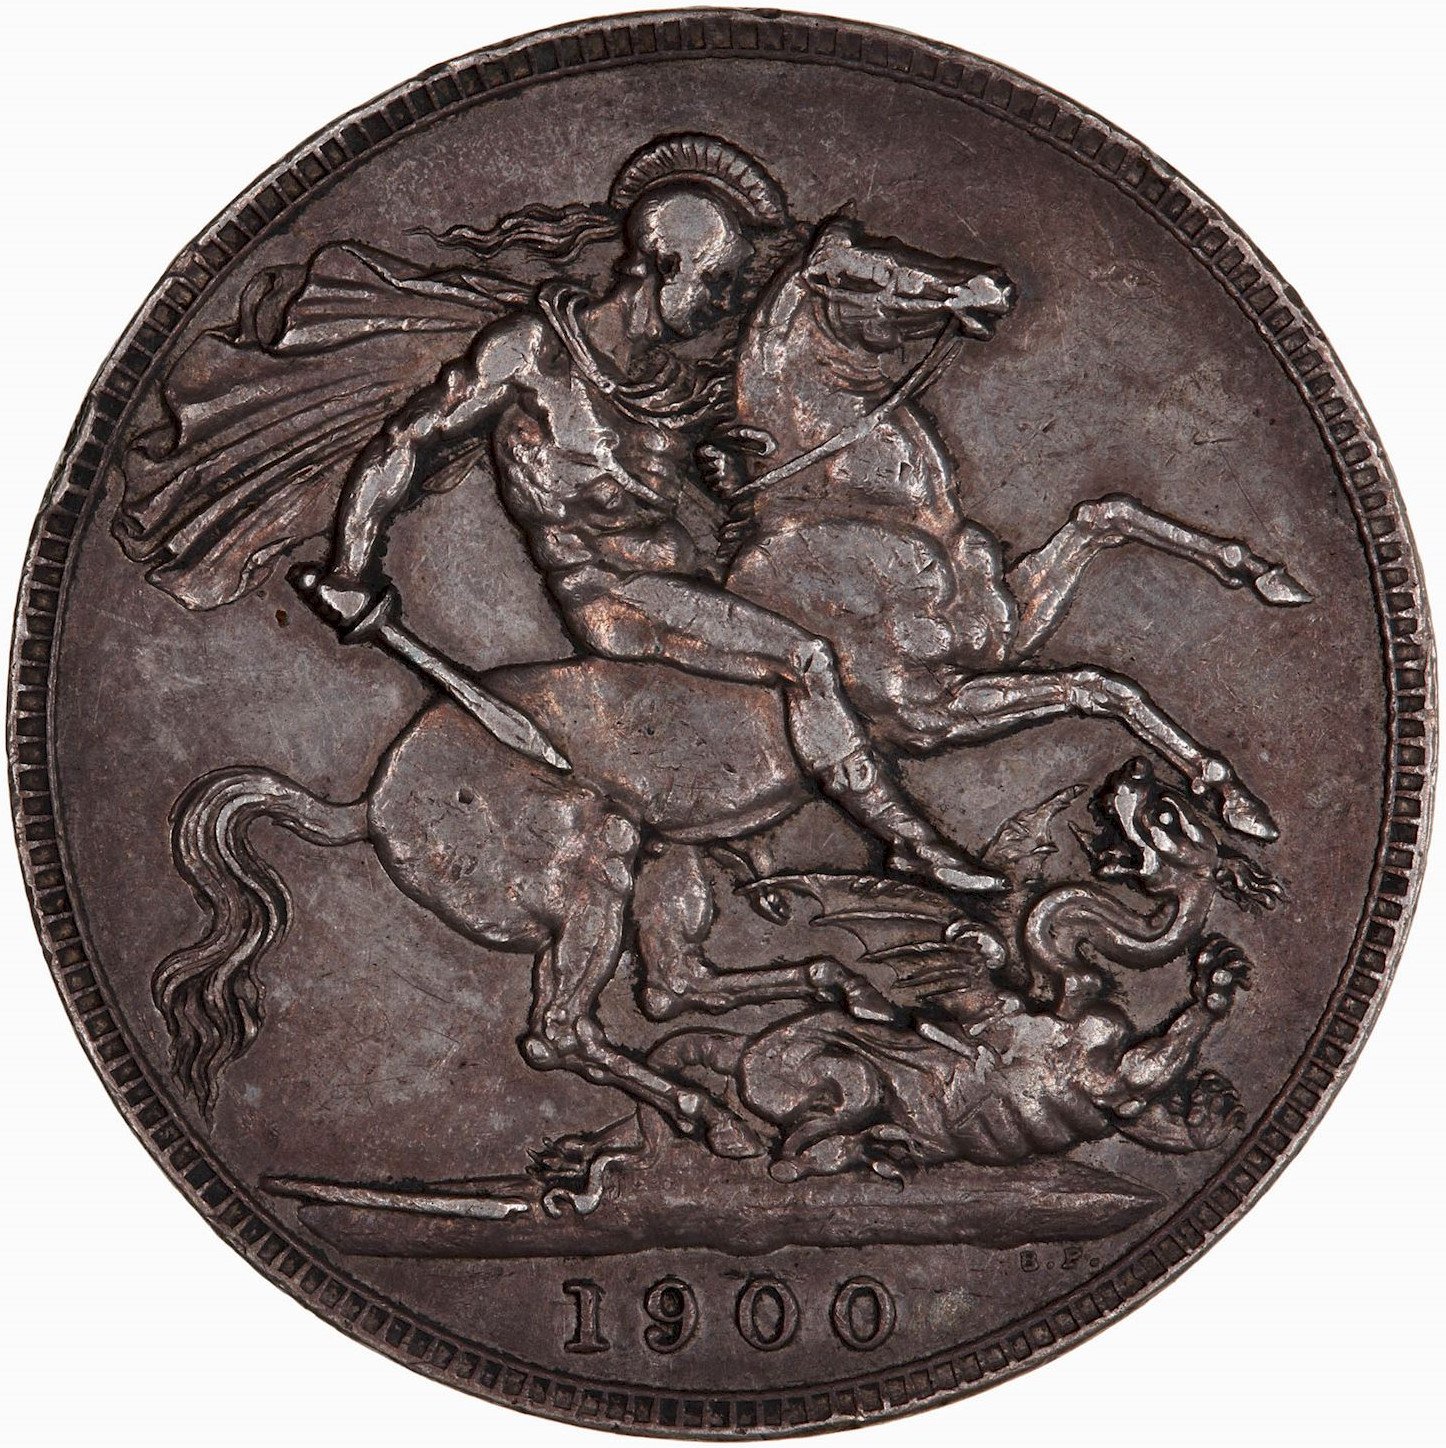 Crown 1900: Photo Coin - Crown, Queen Victoria, Great Britain, 1900